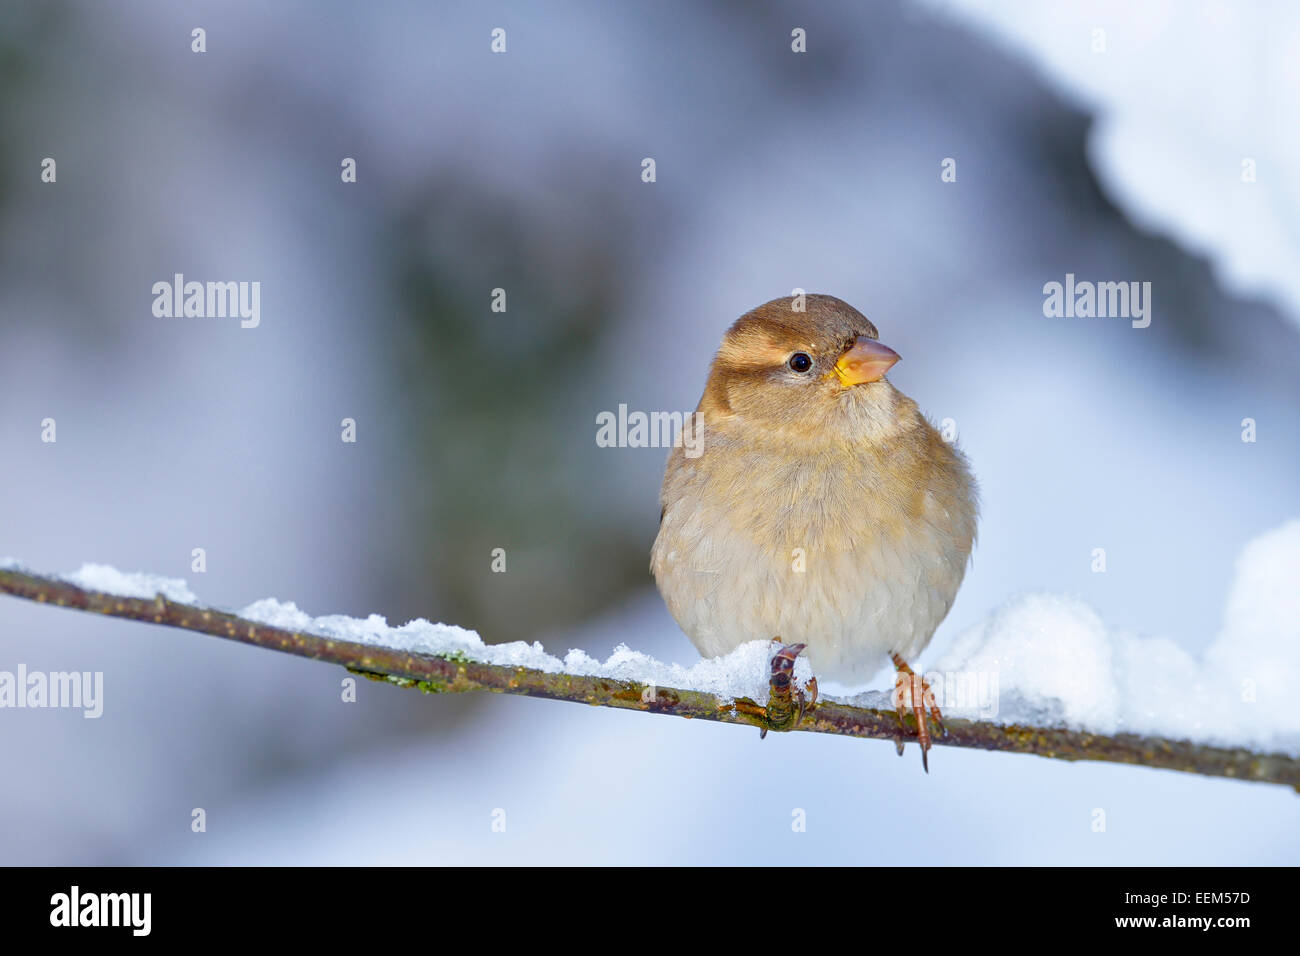 Young House Sparrow (Passer domesticus), female, sitting on twig, Switzerland - Stock Image